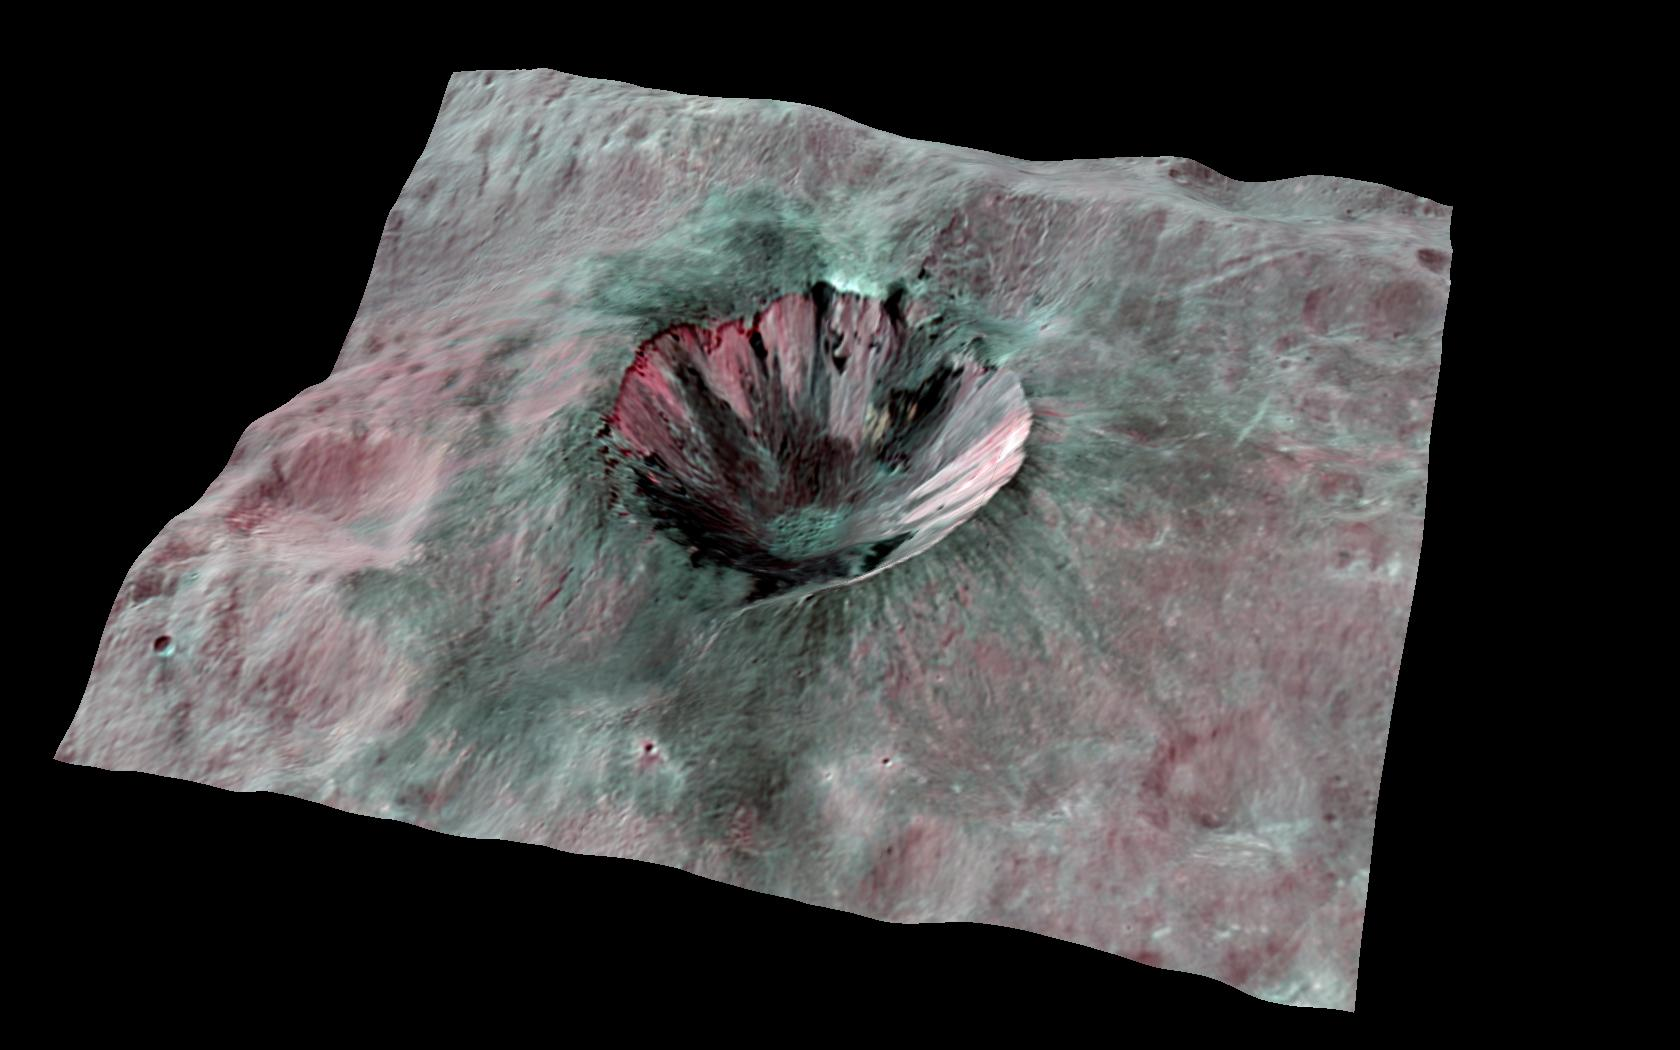 Crater on Huge Asteroid Vesta Gets 3D Treatment